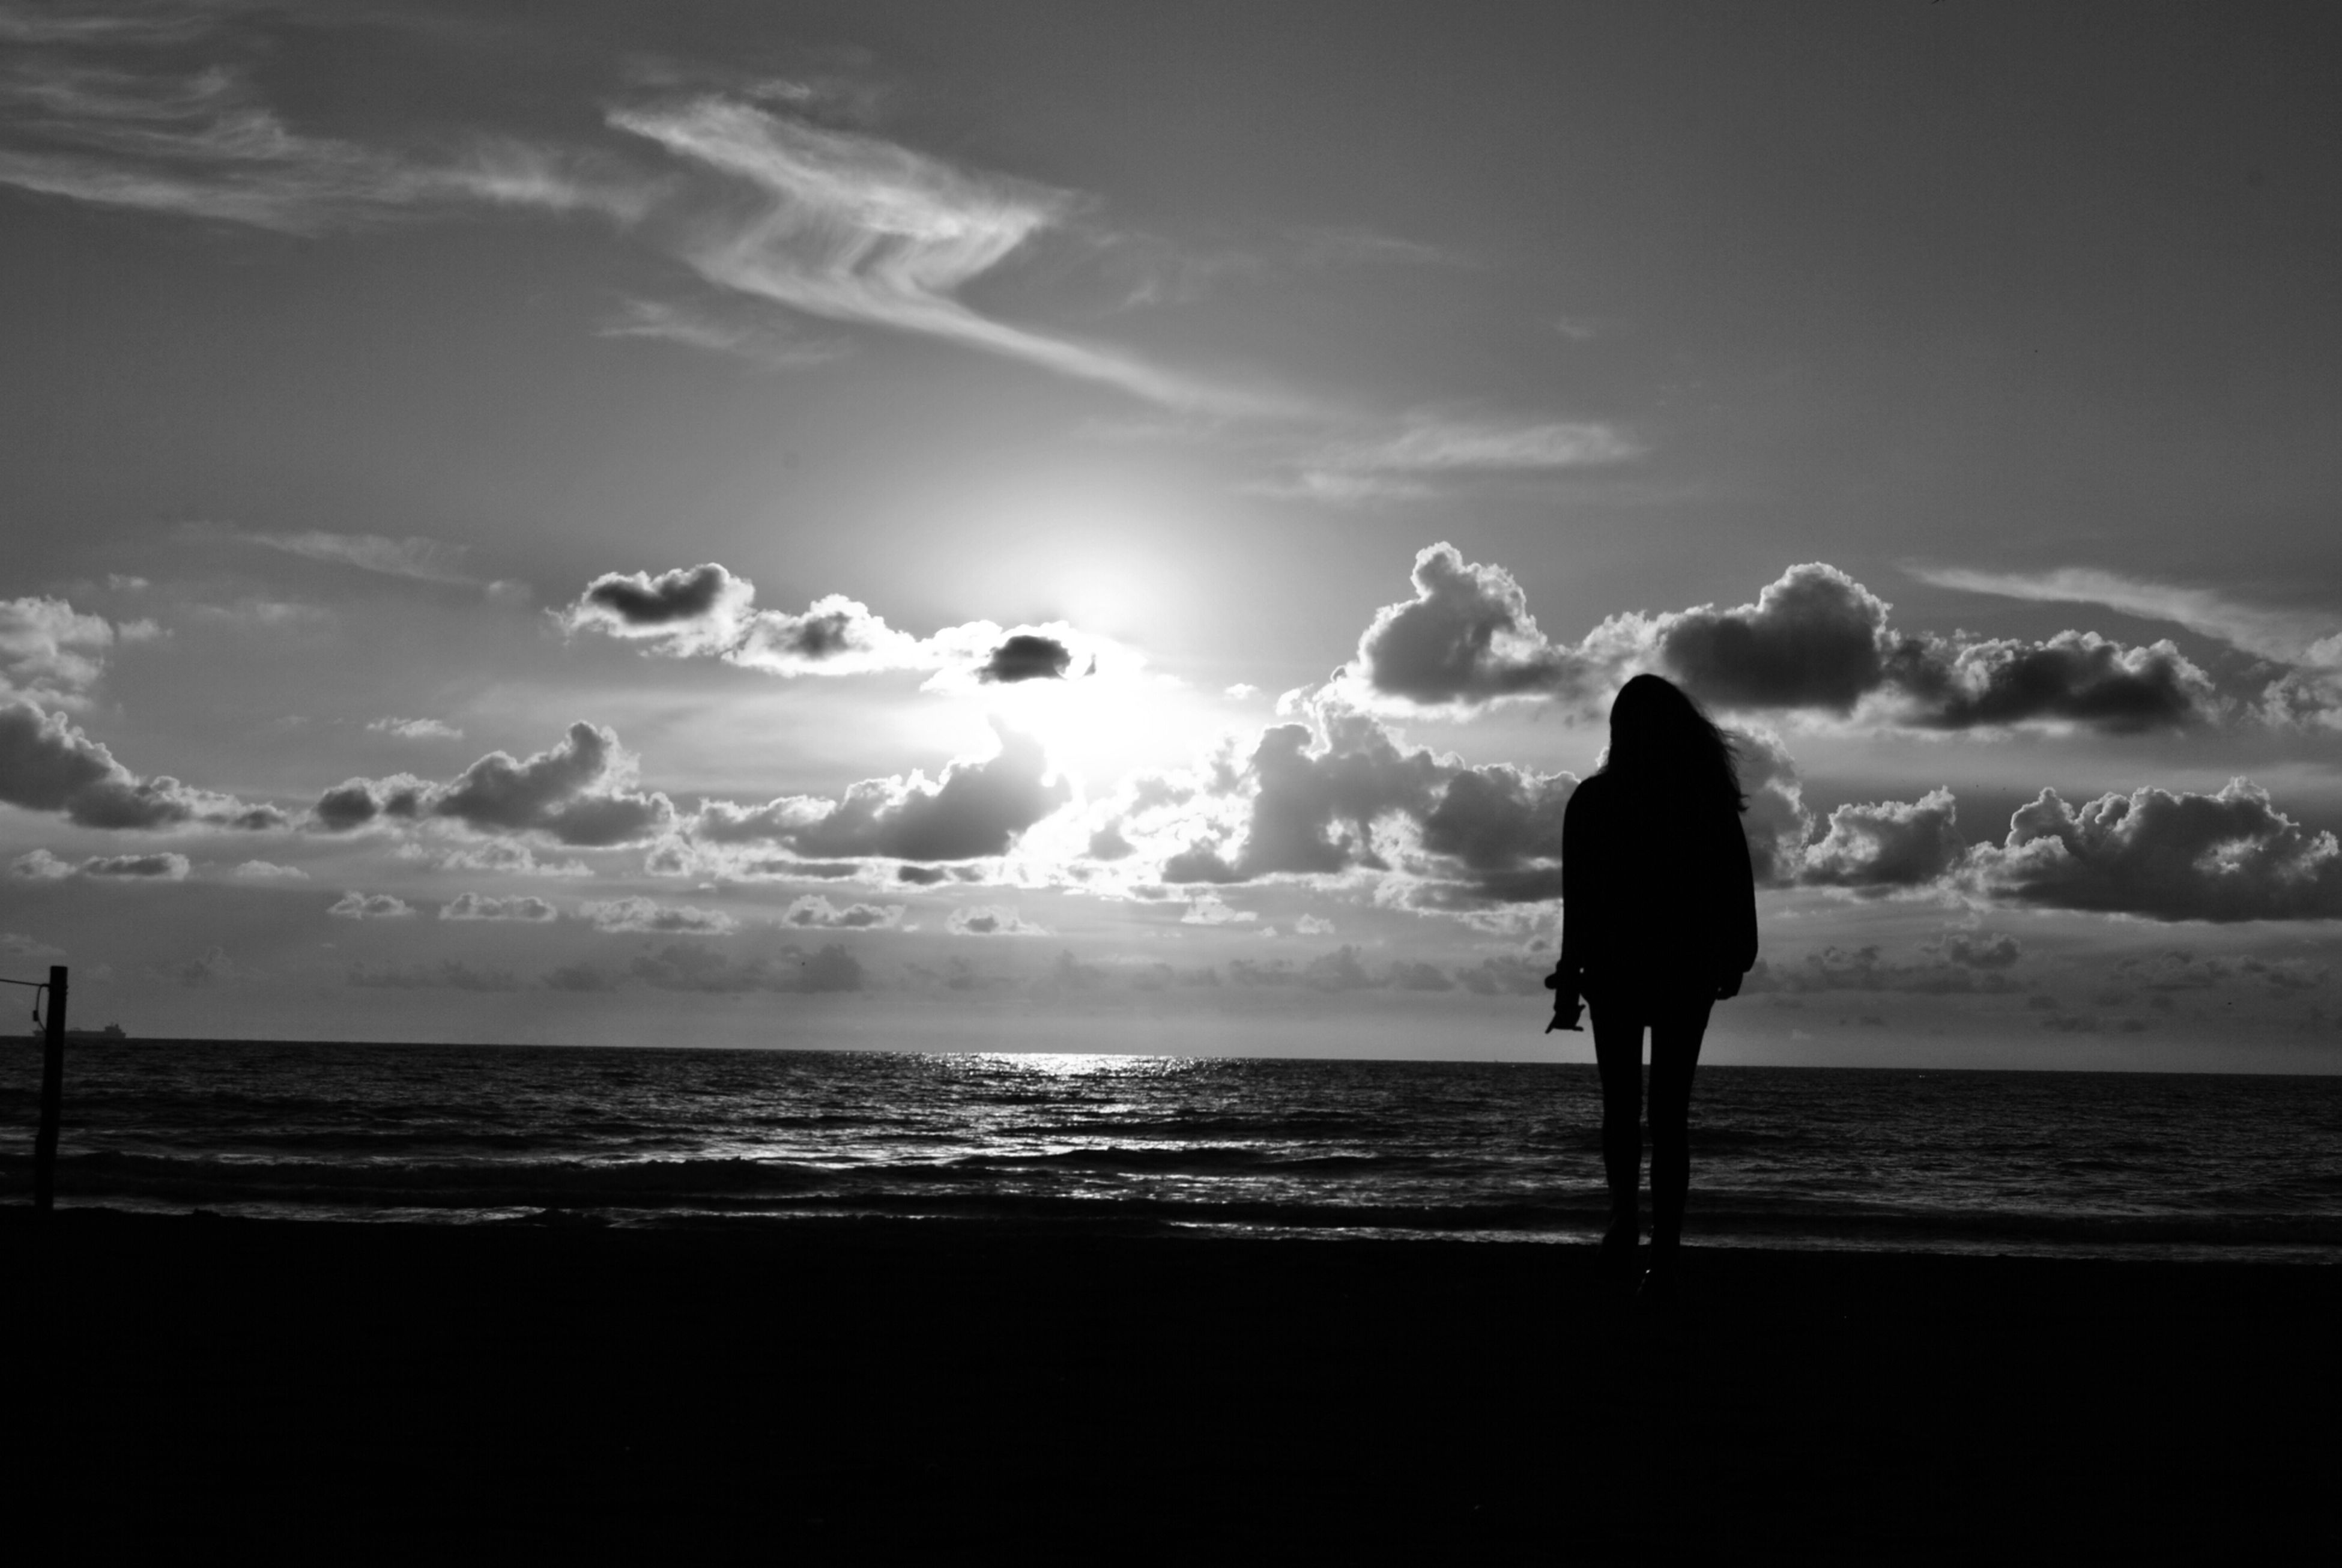 sea, horizon over water, beach, water, rear view, silhouette, sky, scenics, tranquil scene, standing, shore, beauty in nature, lifestyles, tranquility, leisure activity, full length, nature, person